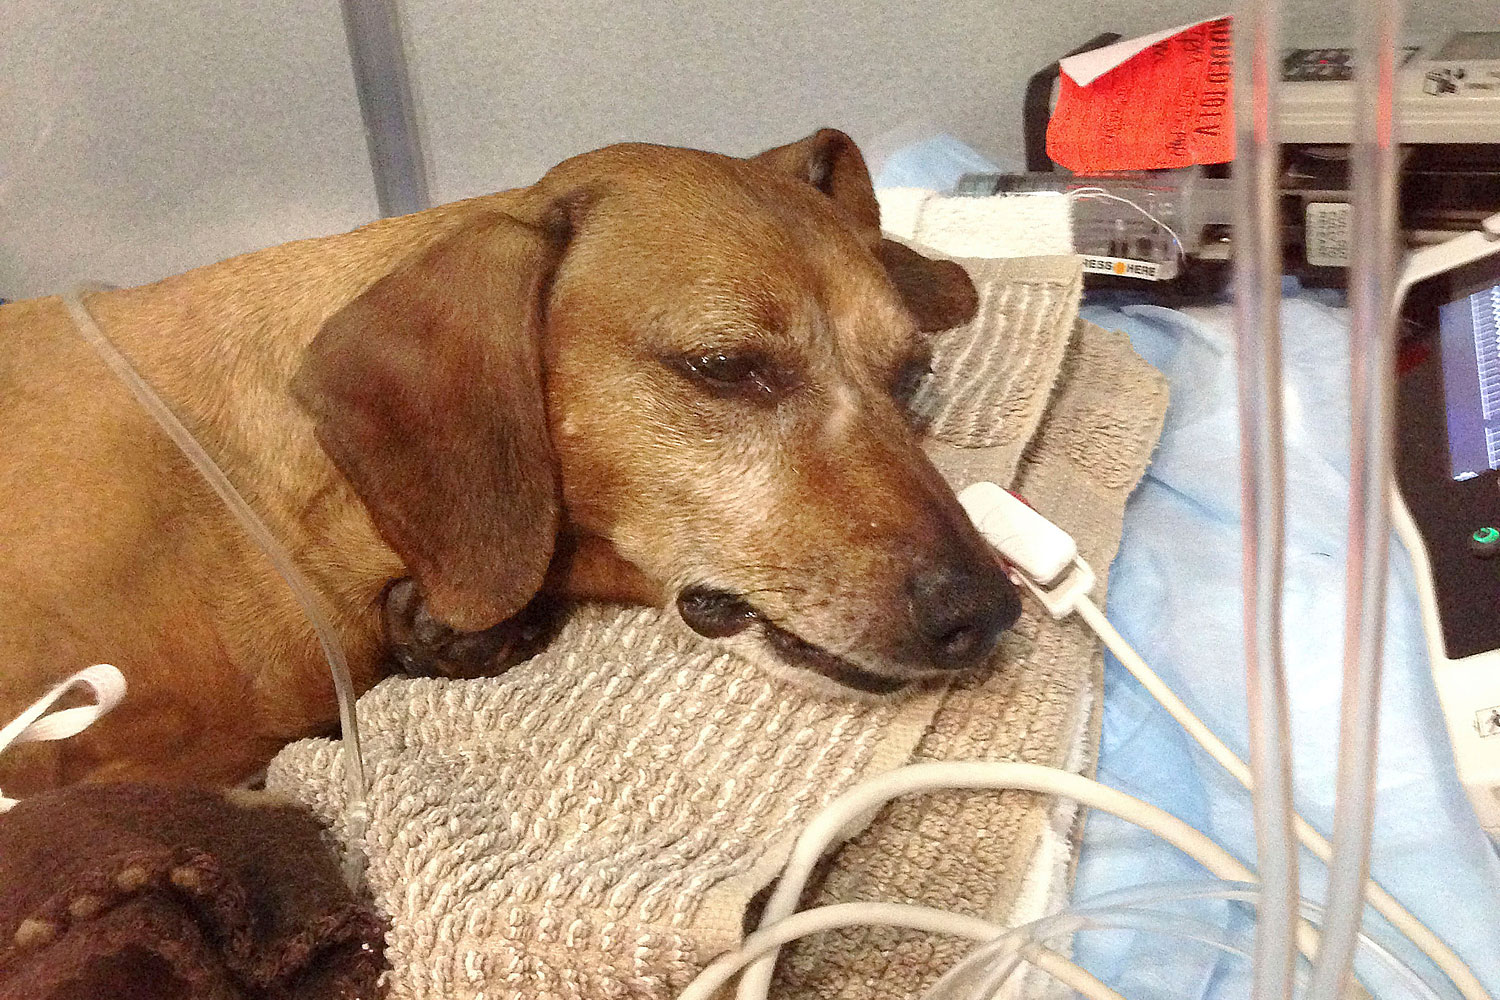 In this 2013 photo released by Animal Internal Medicine & Specialty Services, a 7-year-old dachshund named Oskar is treated in San Francisco.